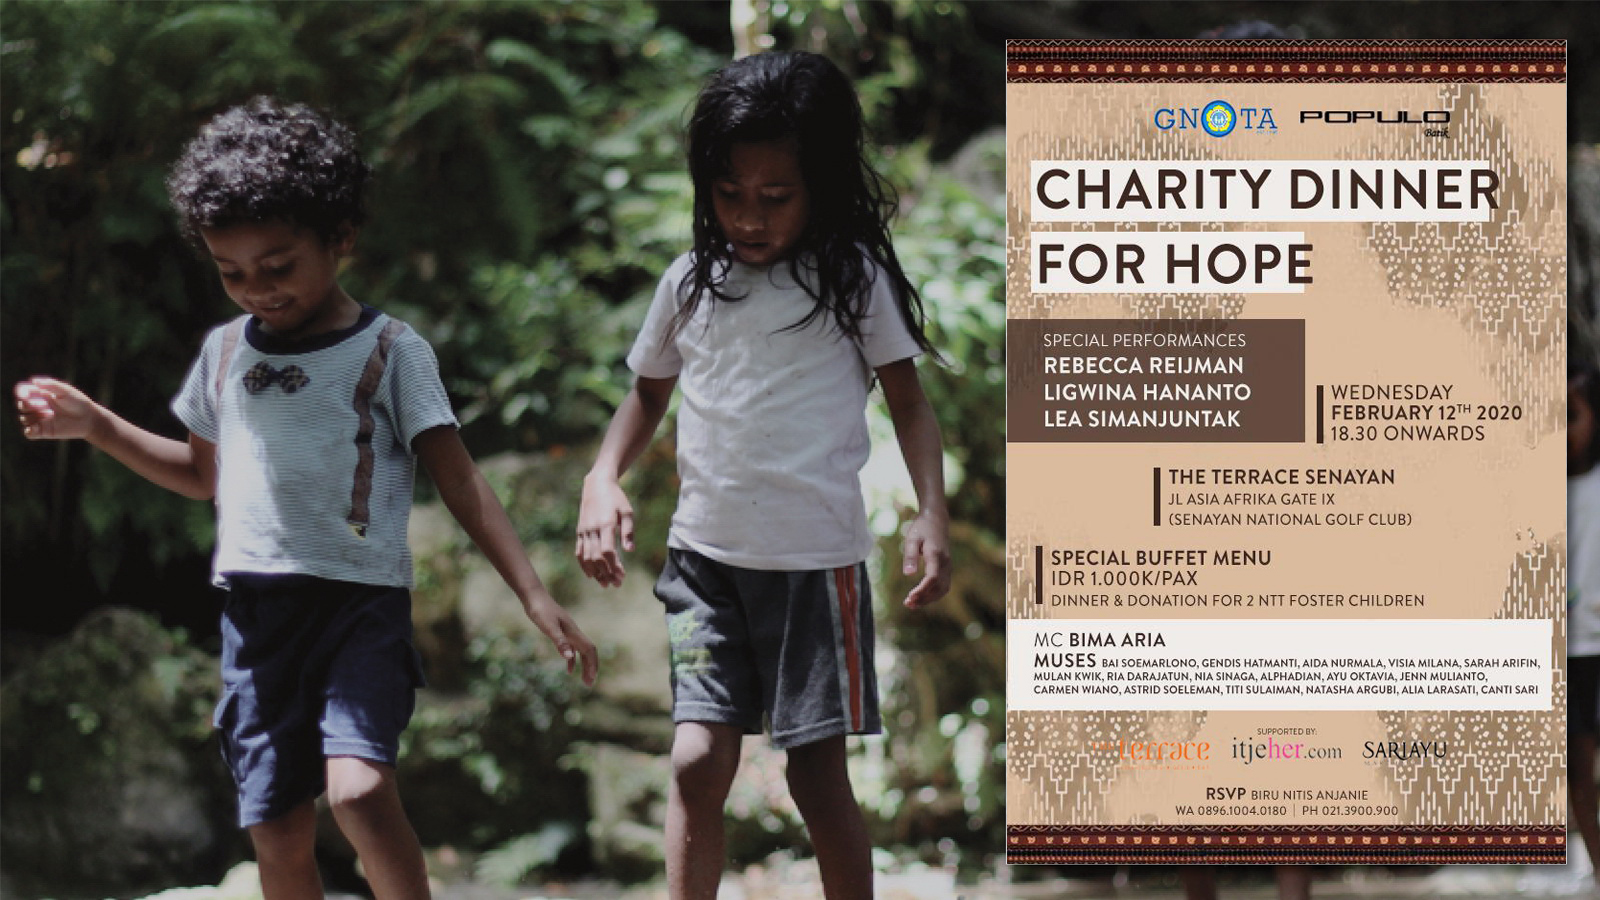 web-banner-charity-dinner-indonesia-new2020